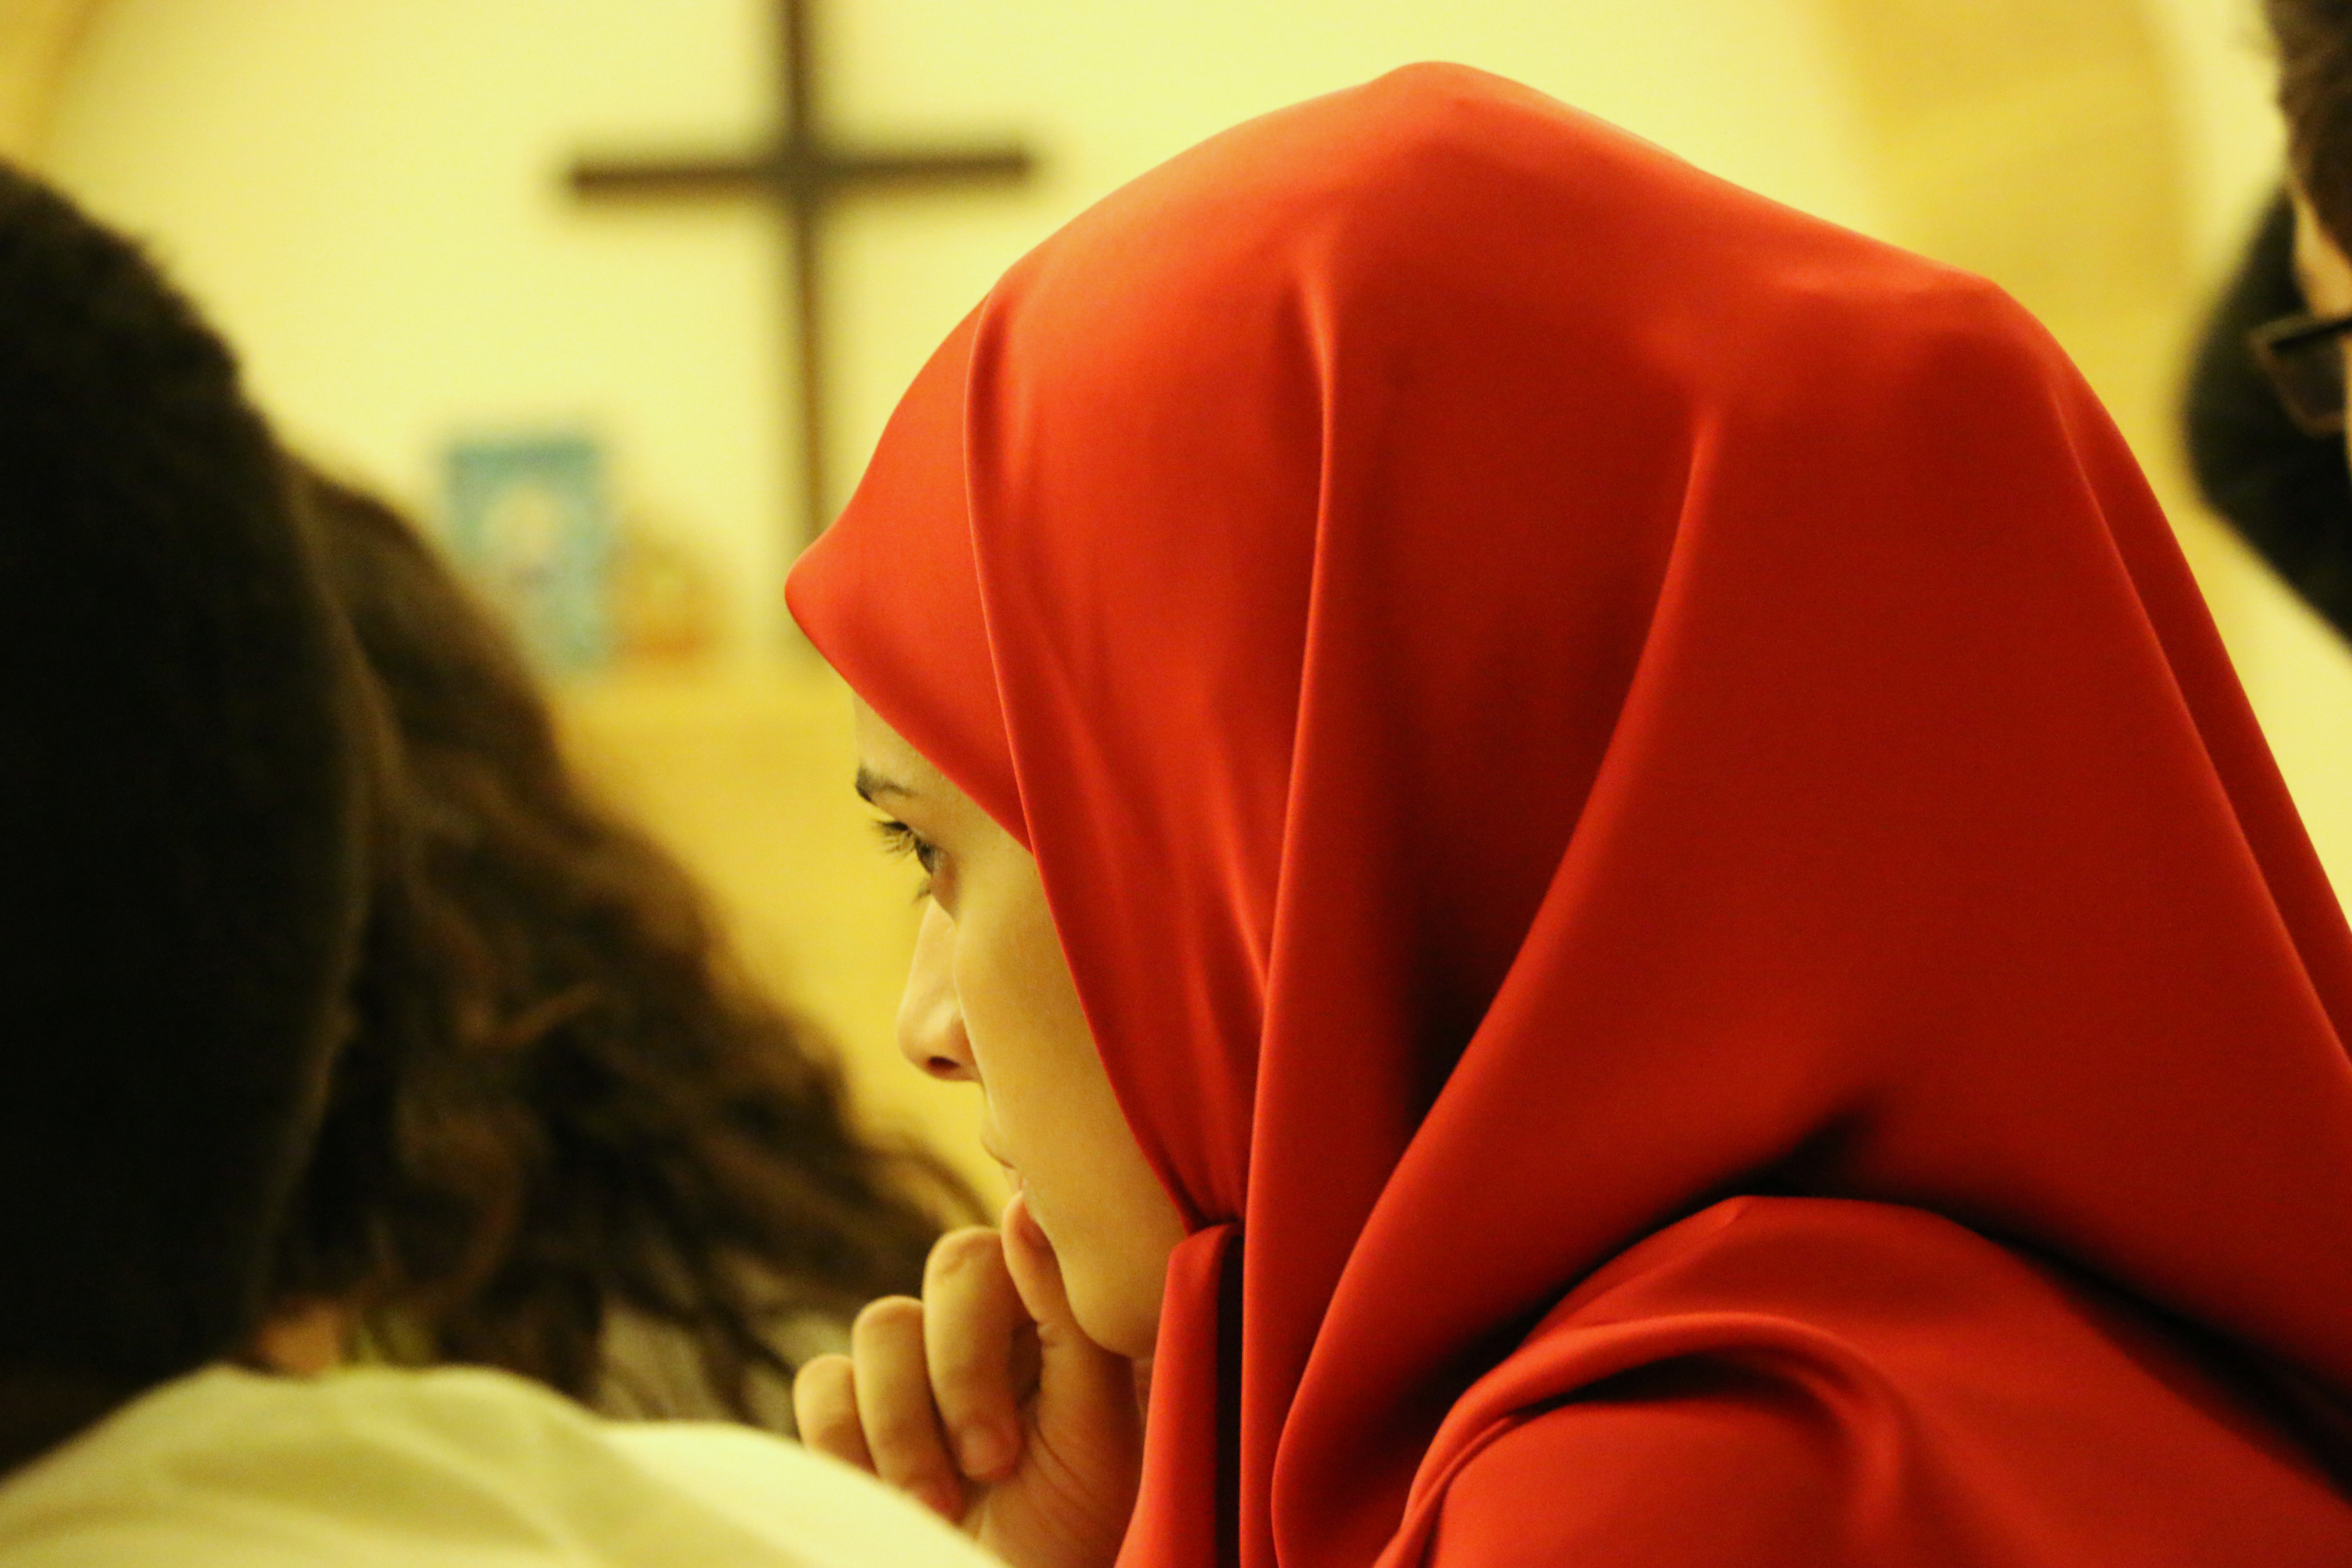 muslim and christian relationship in lebanon